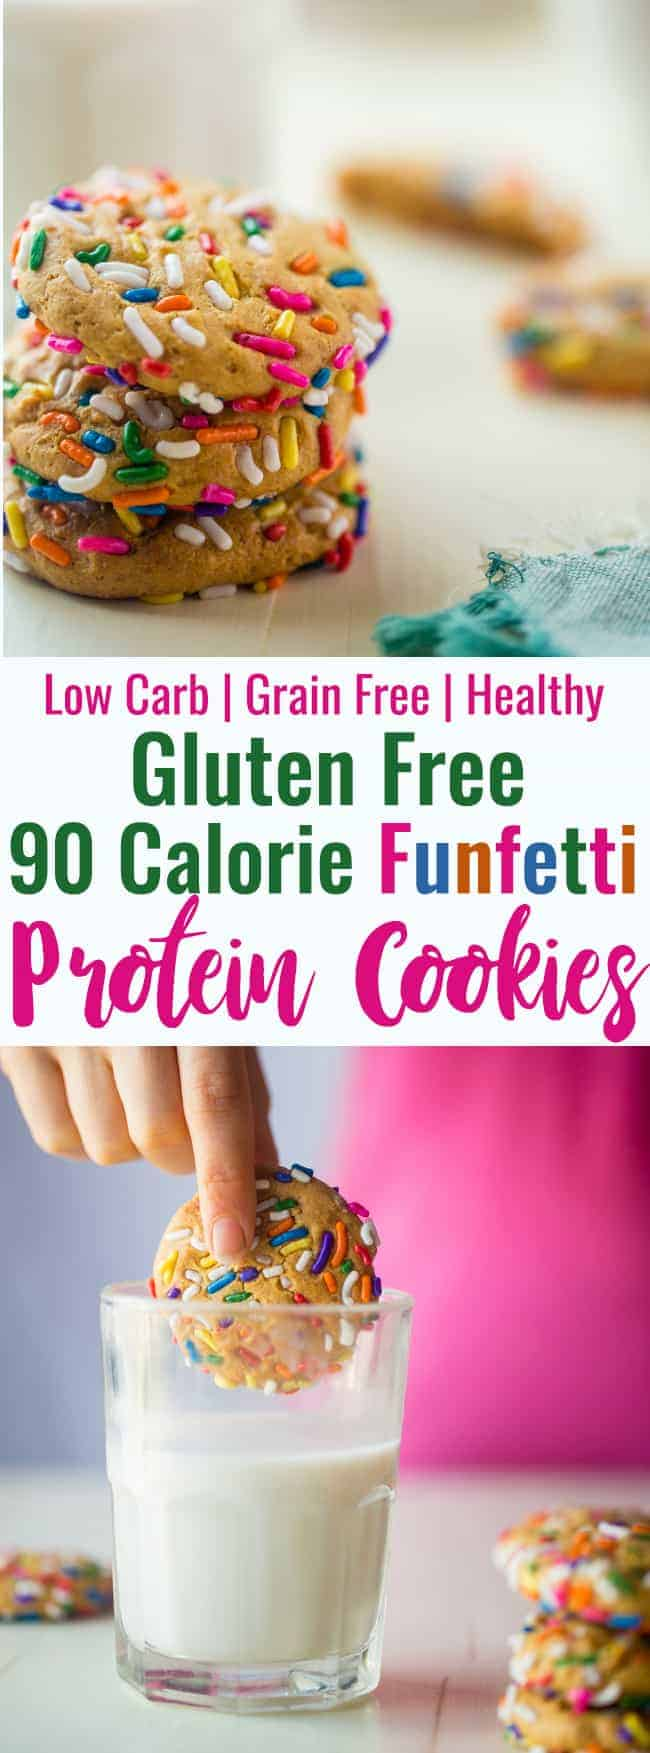 Funfetti Protein Cookies - These quick and easy cookies taste just like funfetti cake! You'll never know they're a healthy, protein-packed and gluten free treat for under 90 calories and 2 Freestyle SmartPoints! | #Foodfaithfit | #GlutenFree #LowCarb #WeightWatchers #Healthy #ProteinPowder